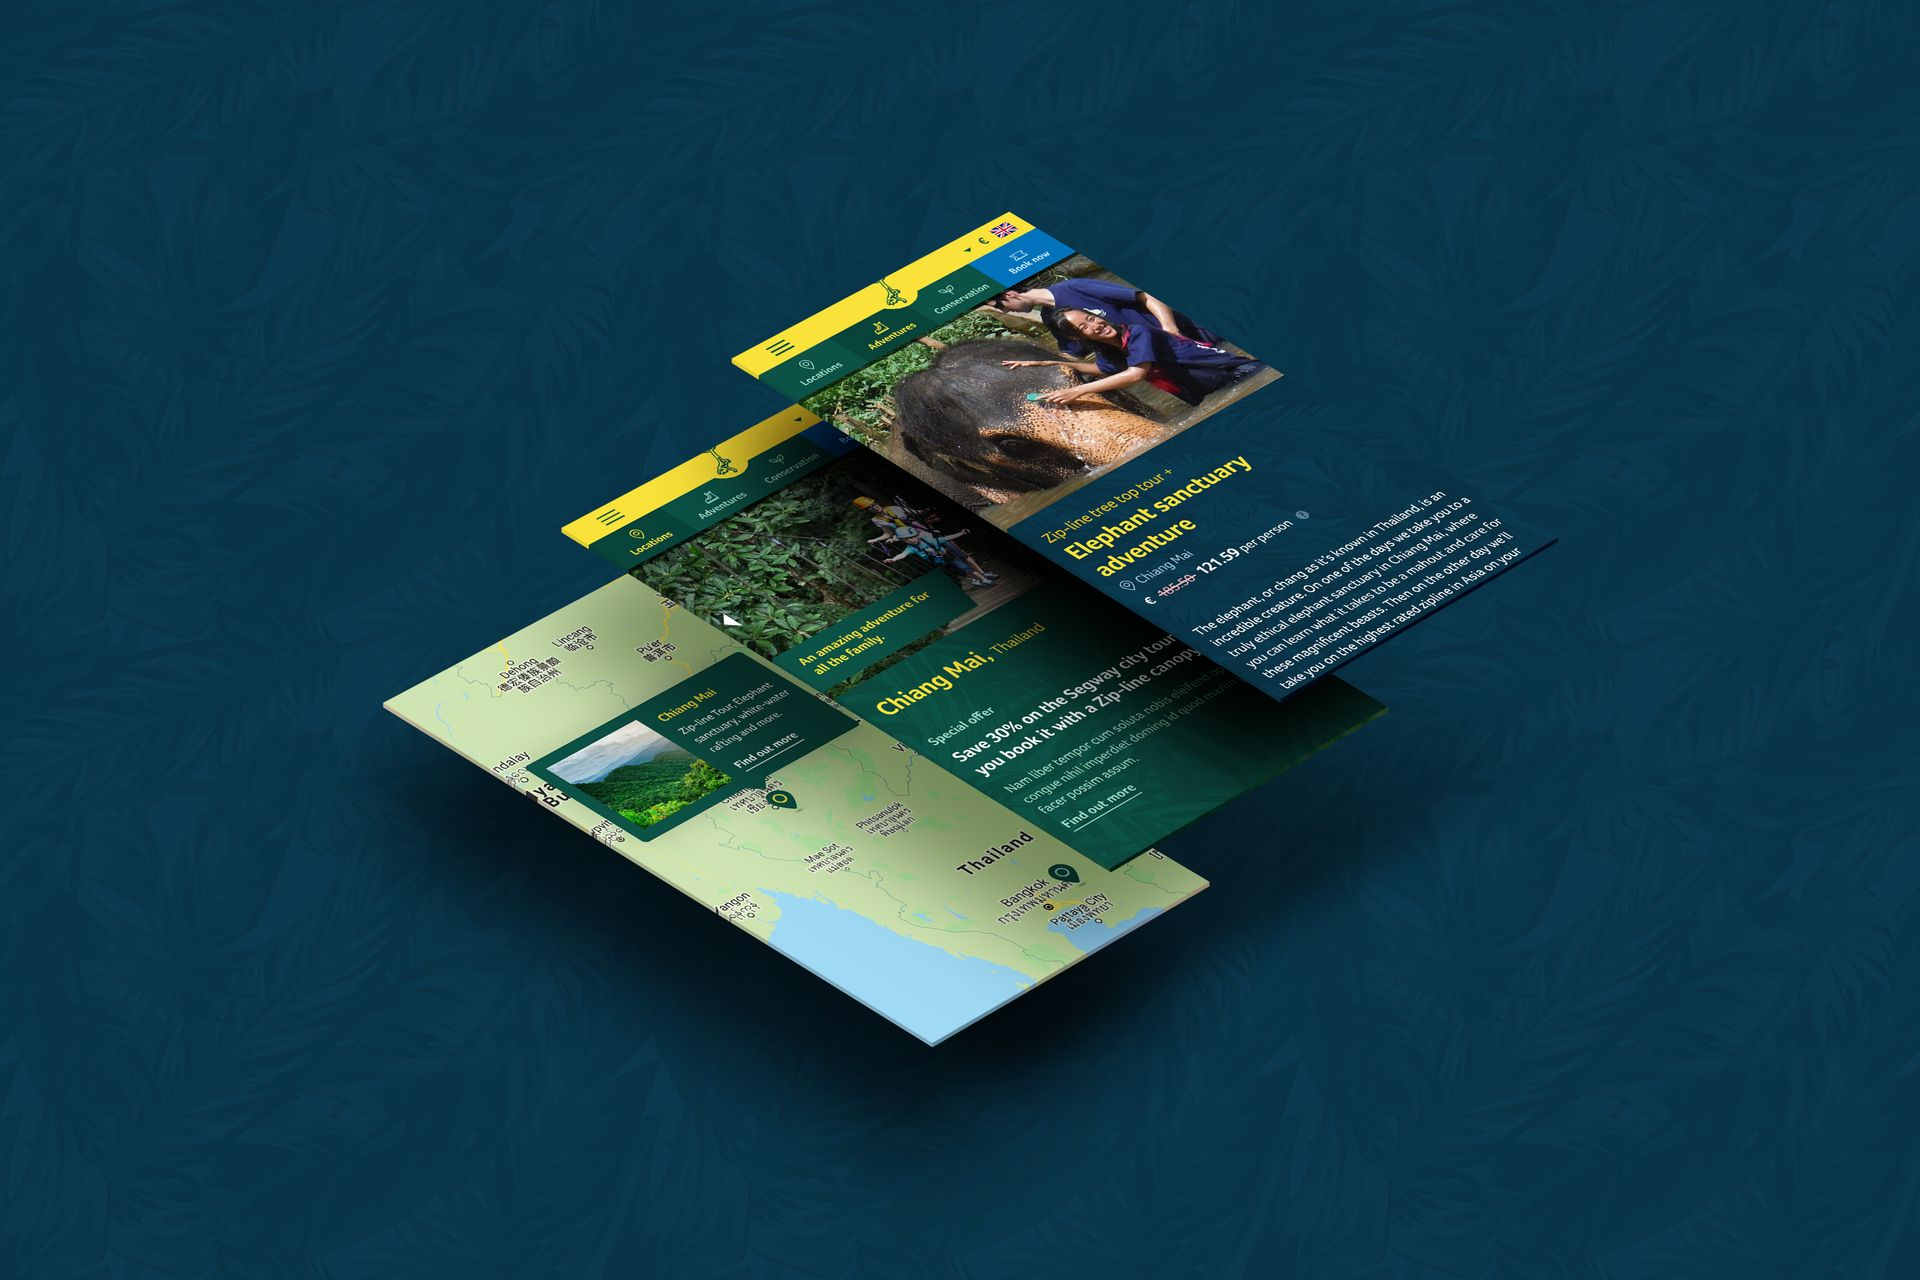 Flight of the Gibbon mobile screen designs